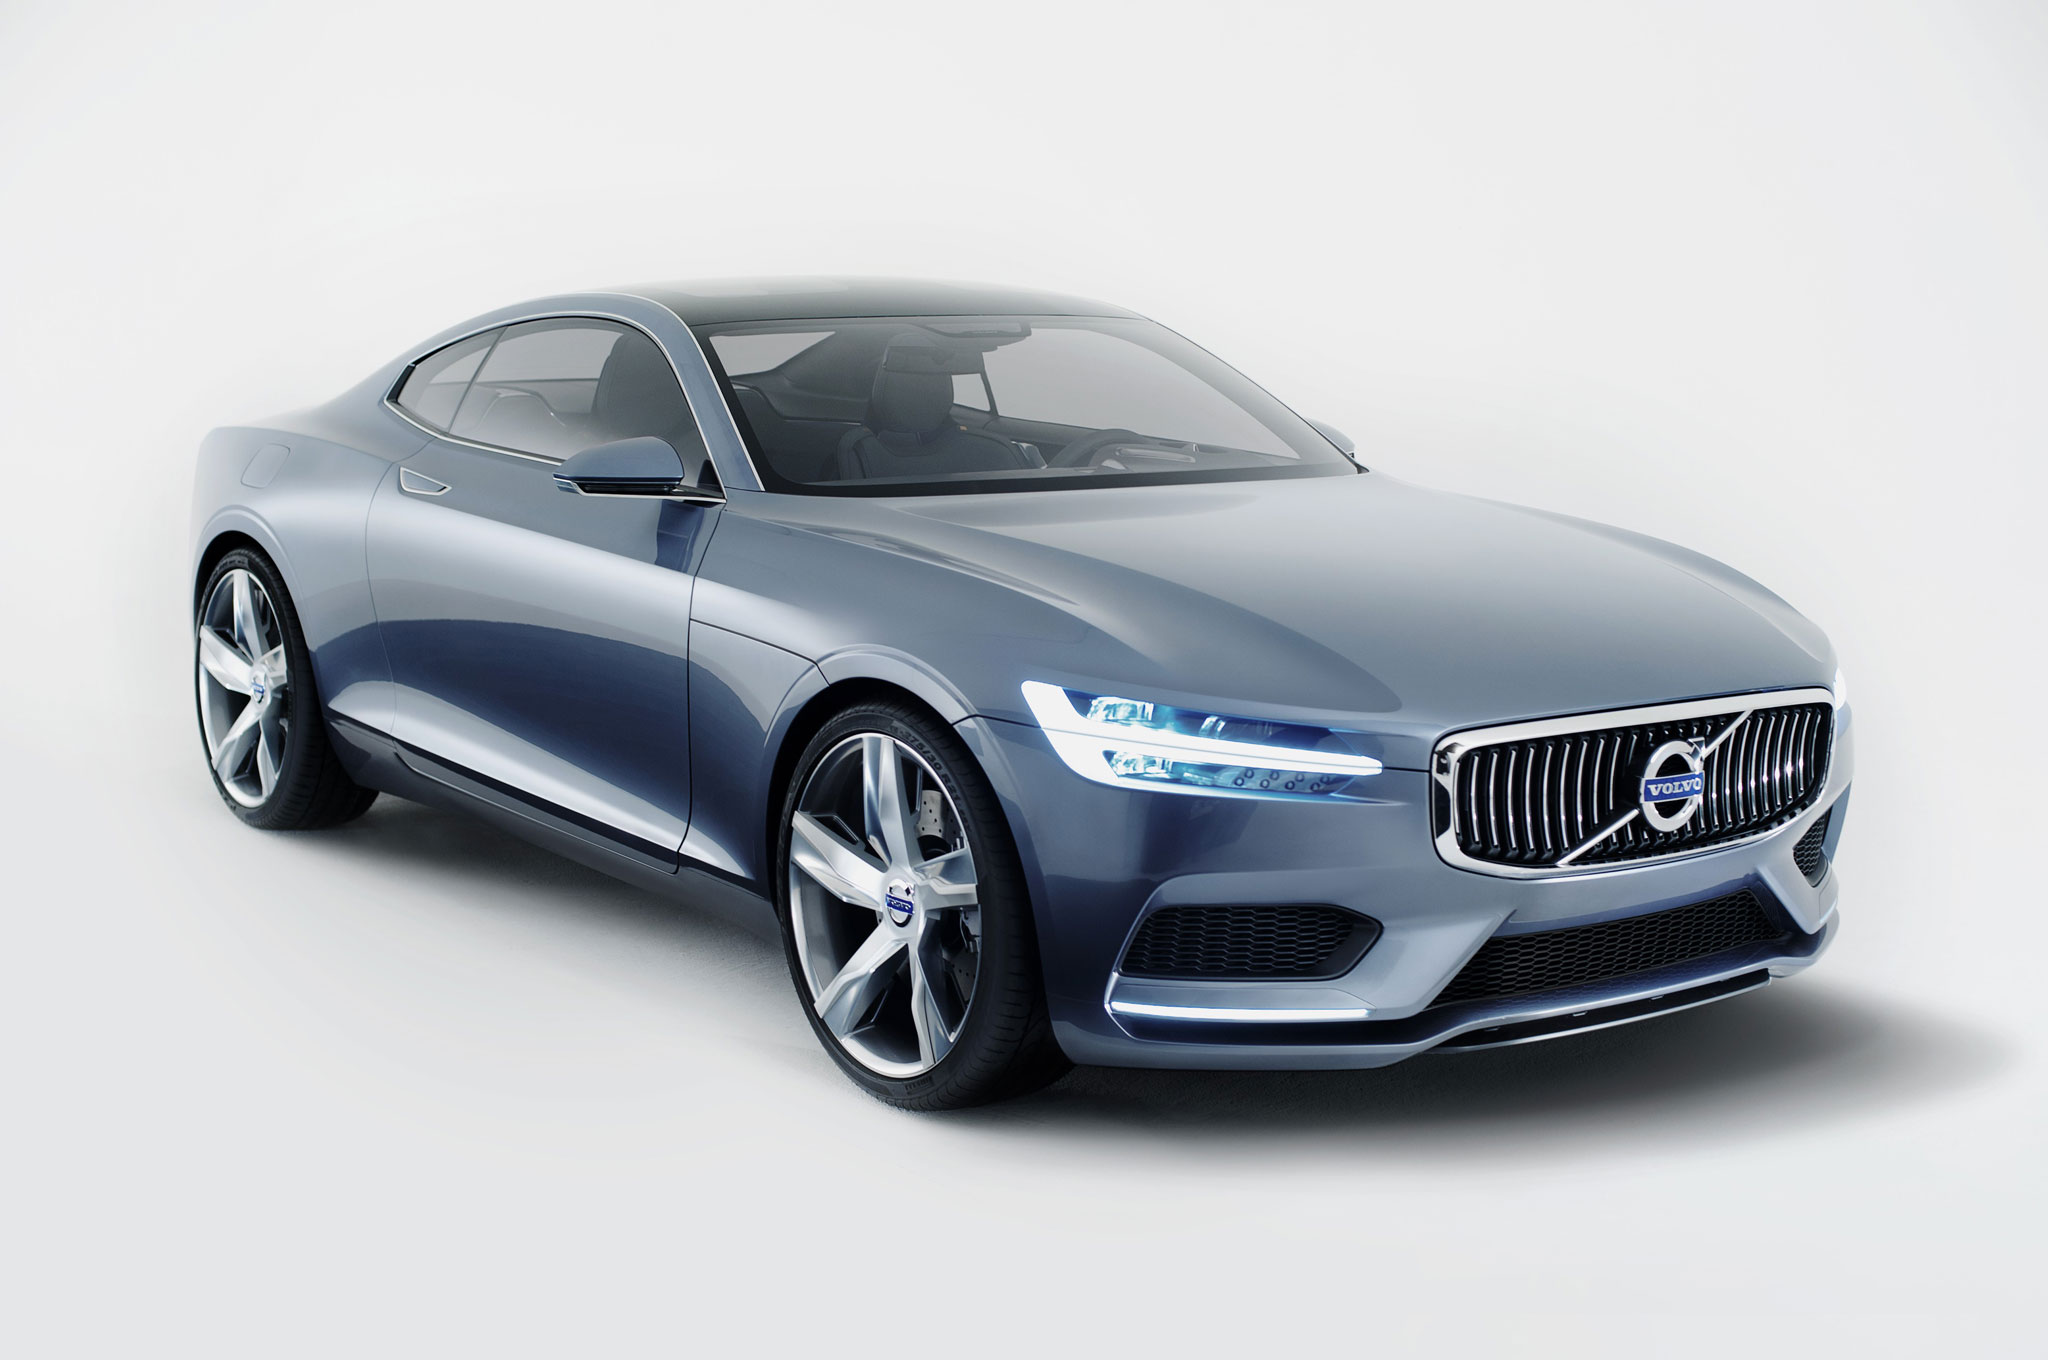 Volvo Concept Coupe Front Right Side View1